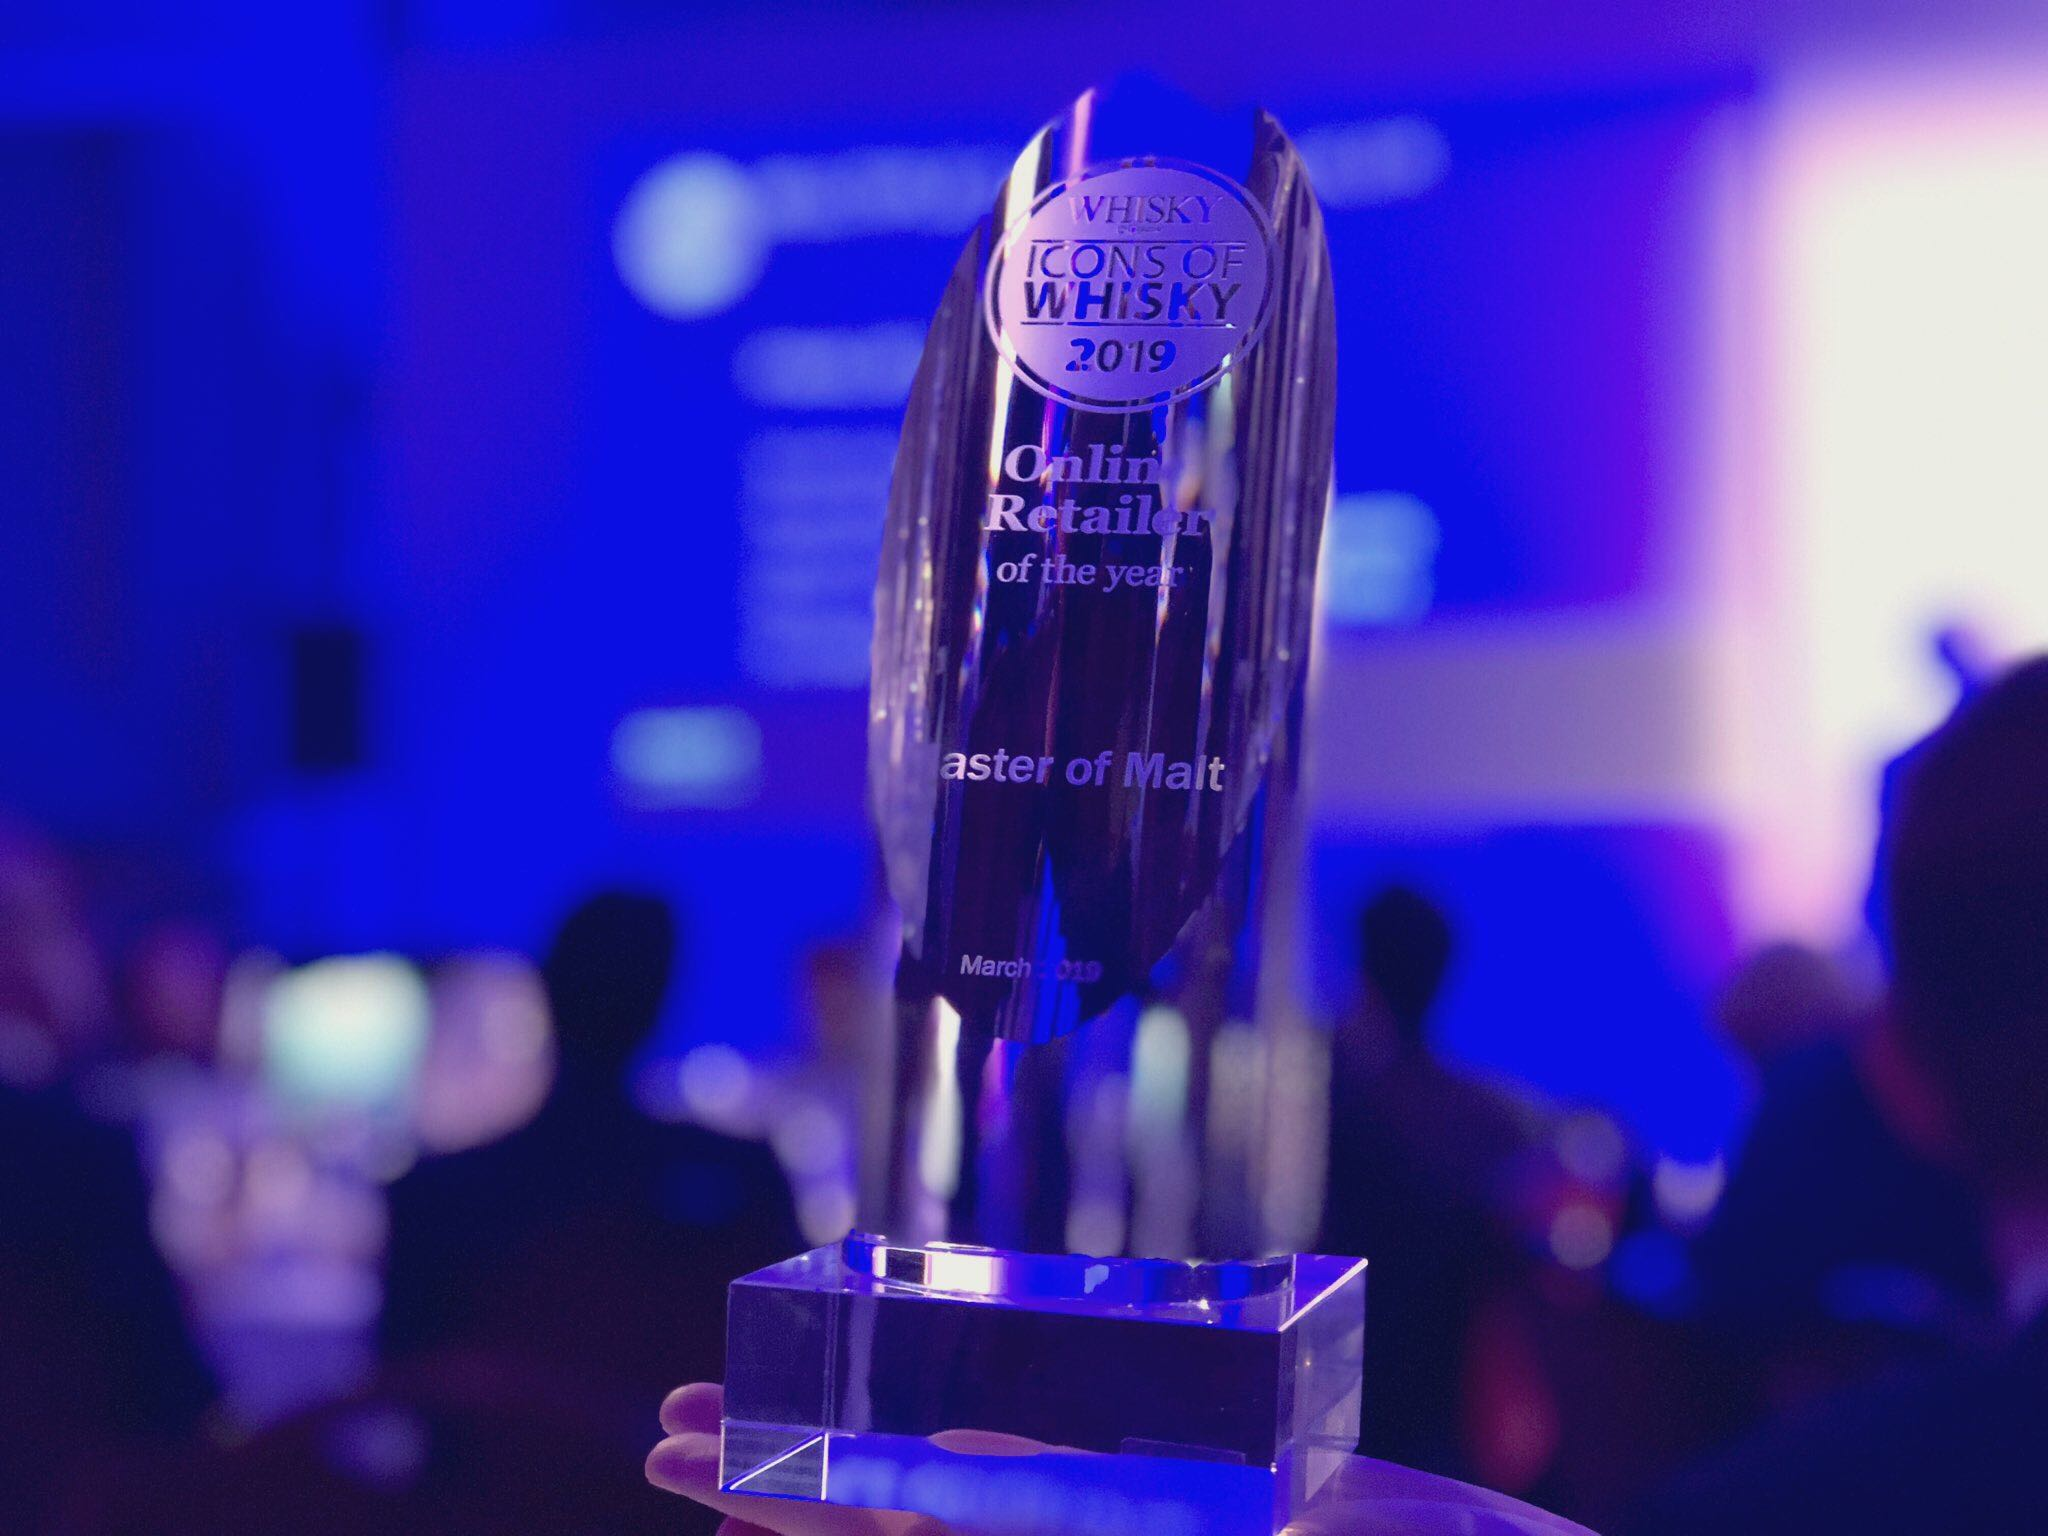 Icons of Whisky Online Retailer of the Year trophy